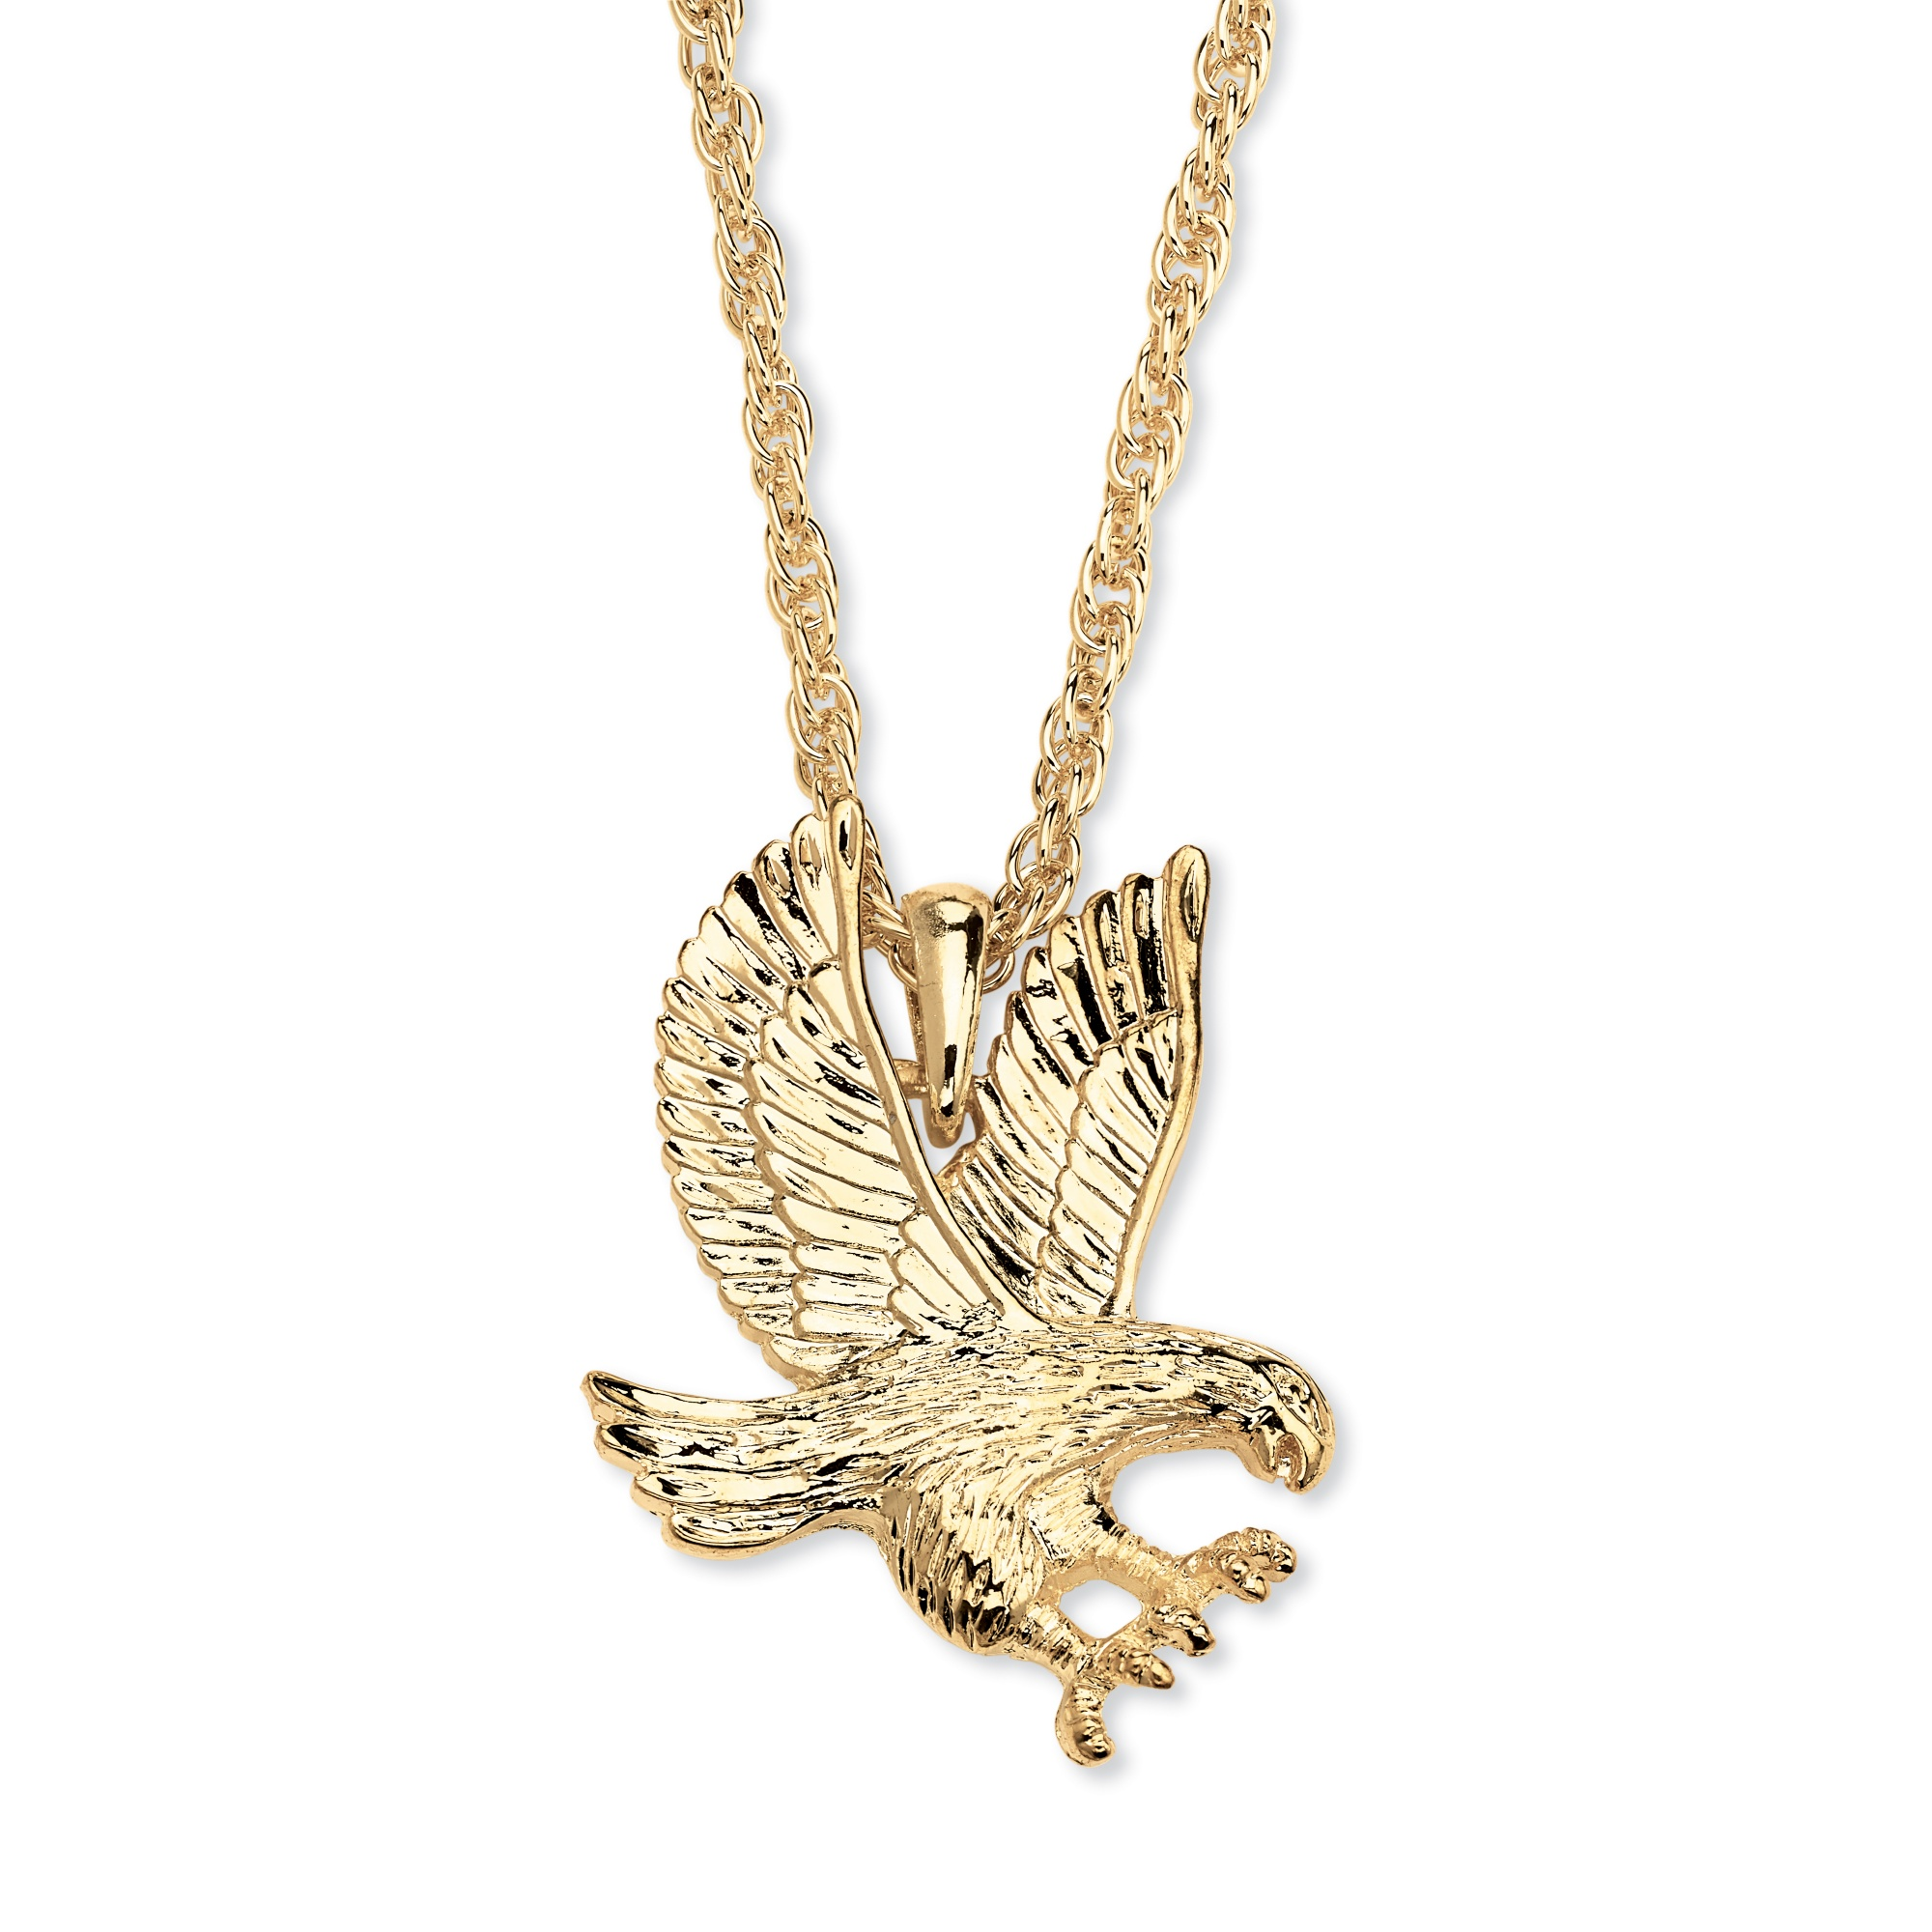 gld shop pendant x pop future up eagle freebandz